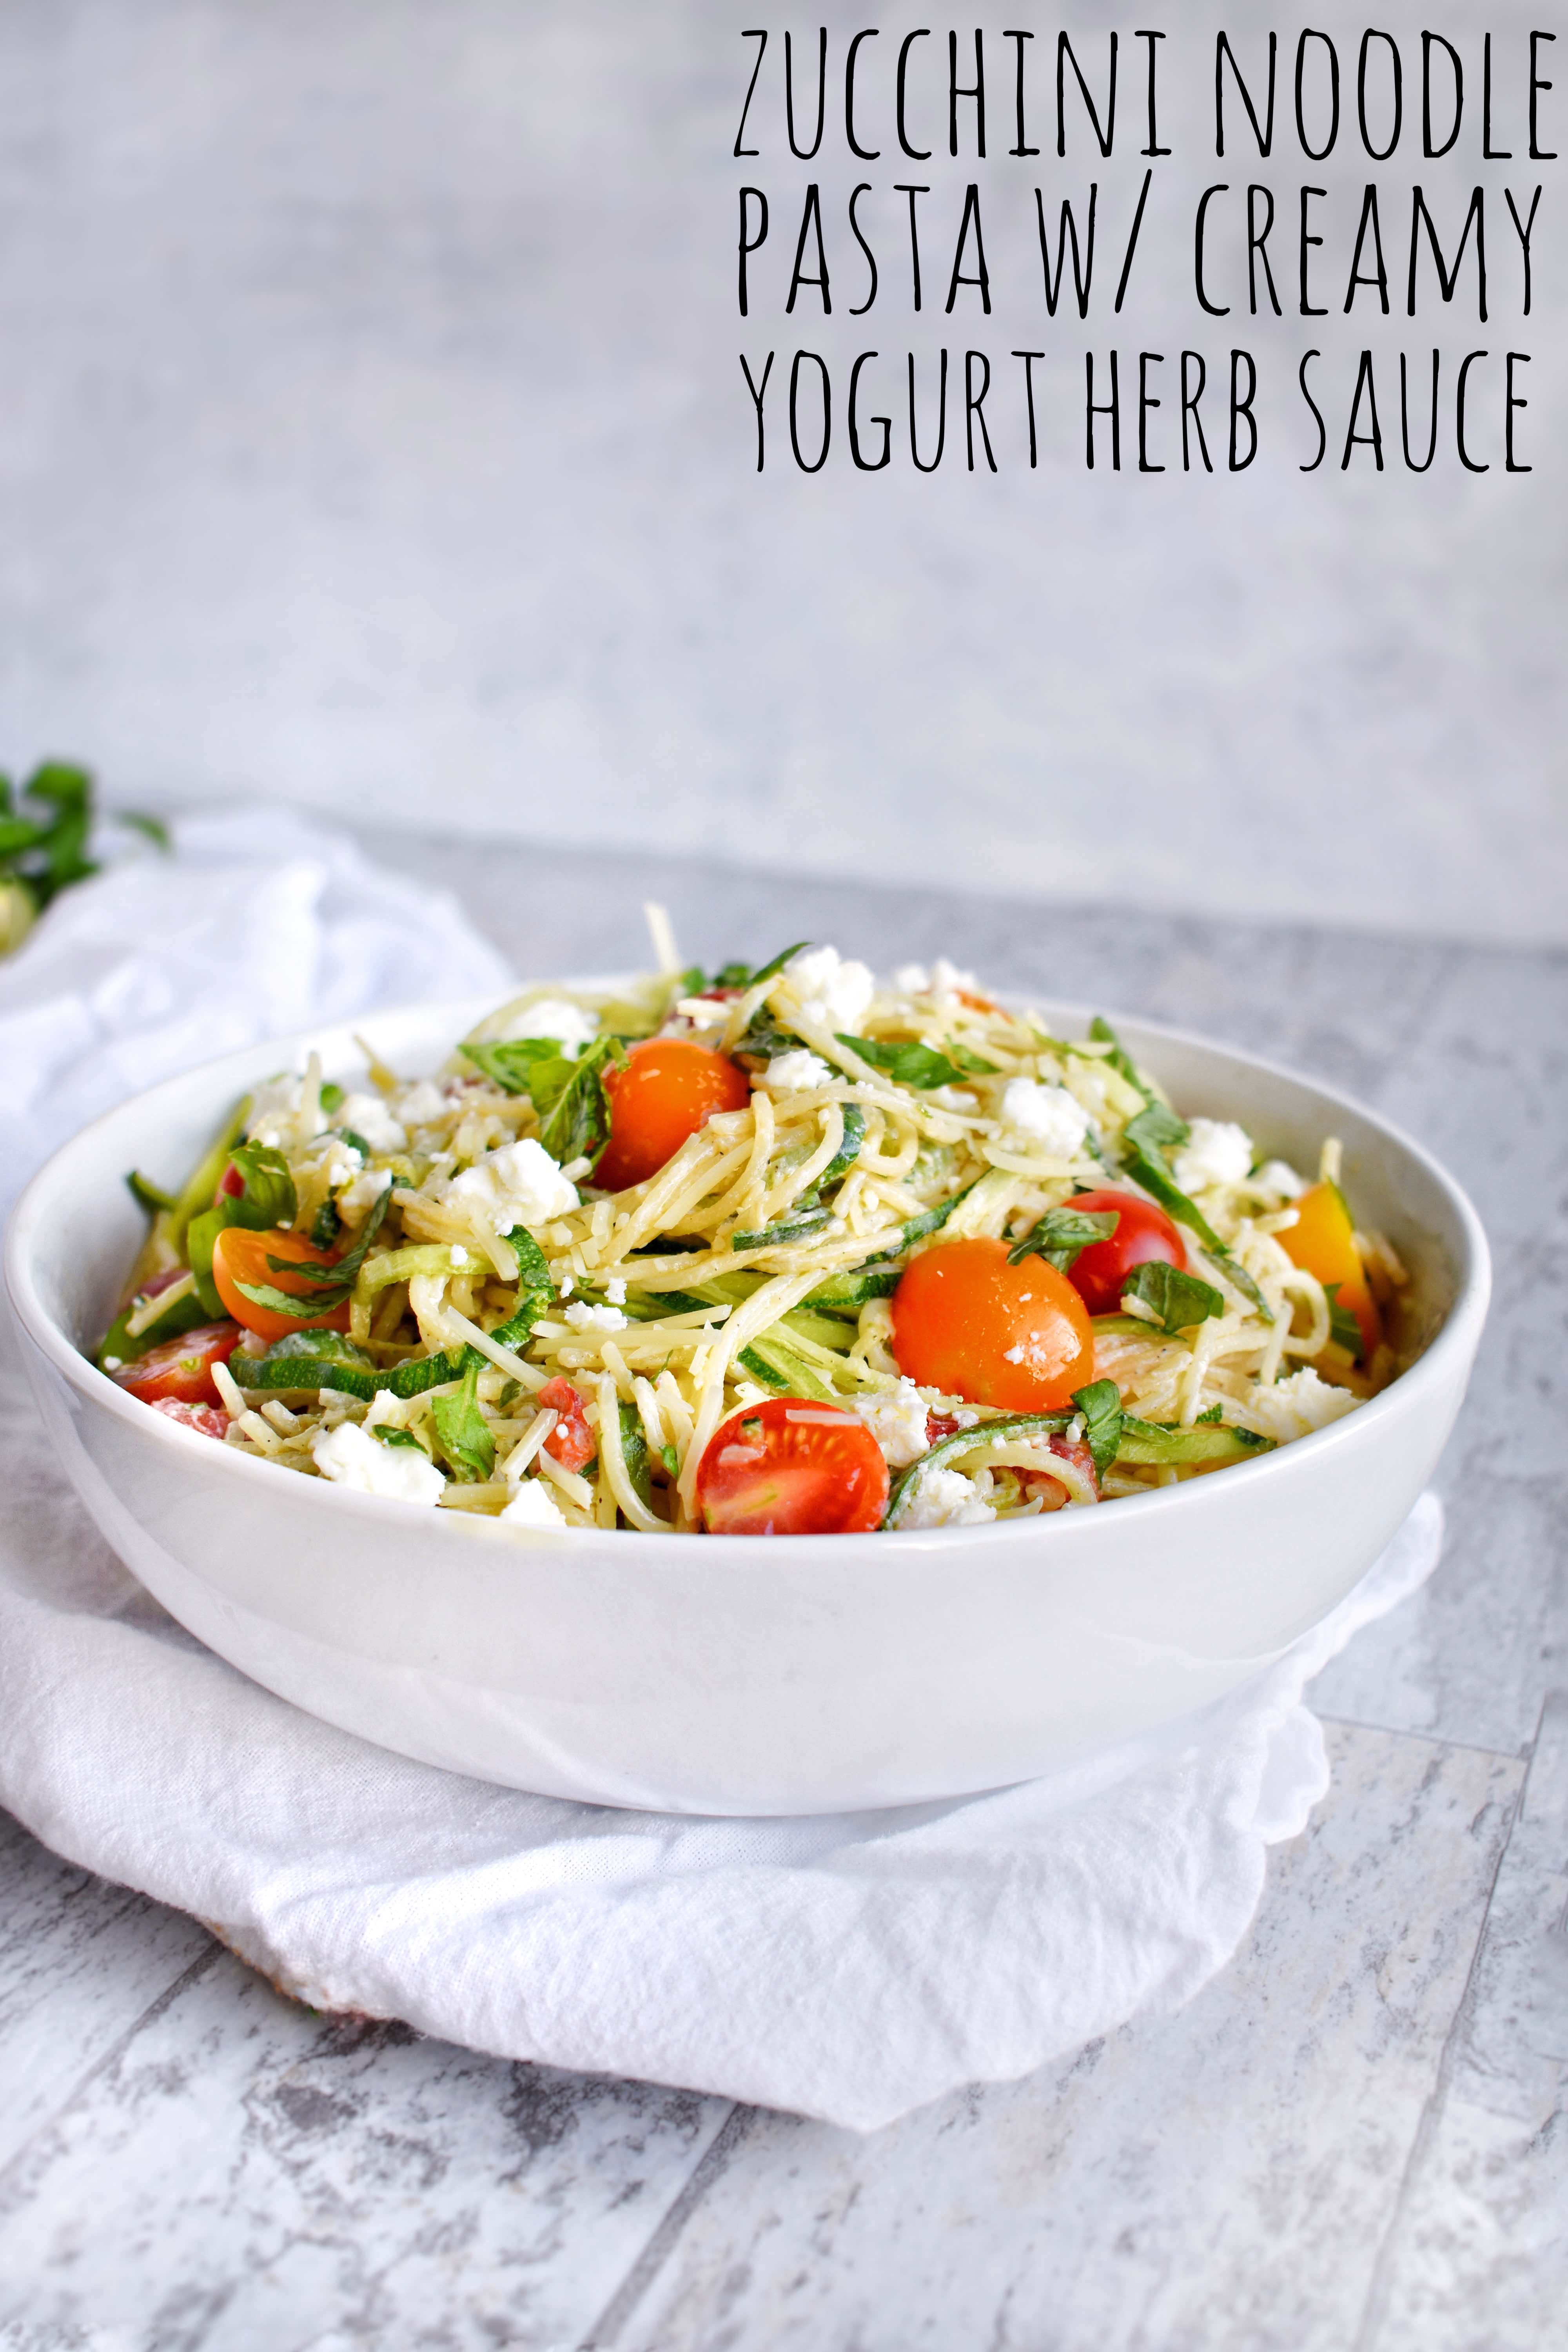 zoodle pasta with yogurt herb sauce in white bowl with title